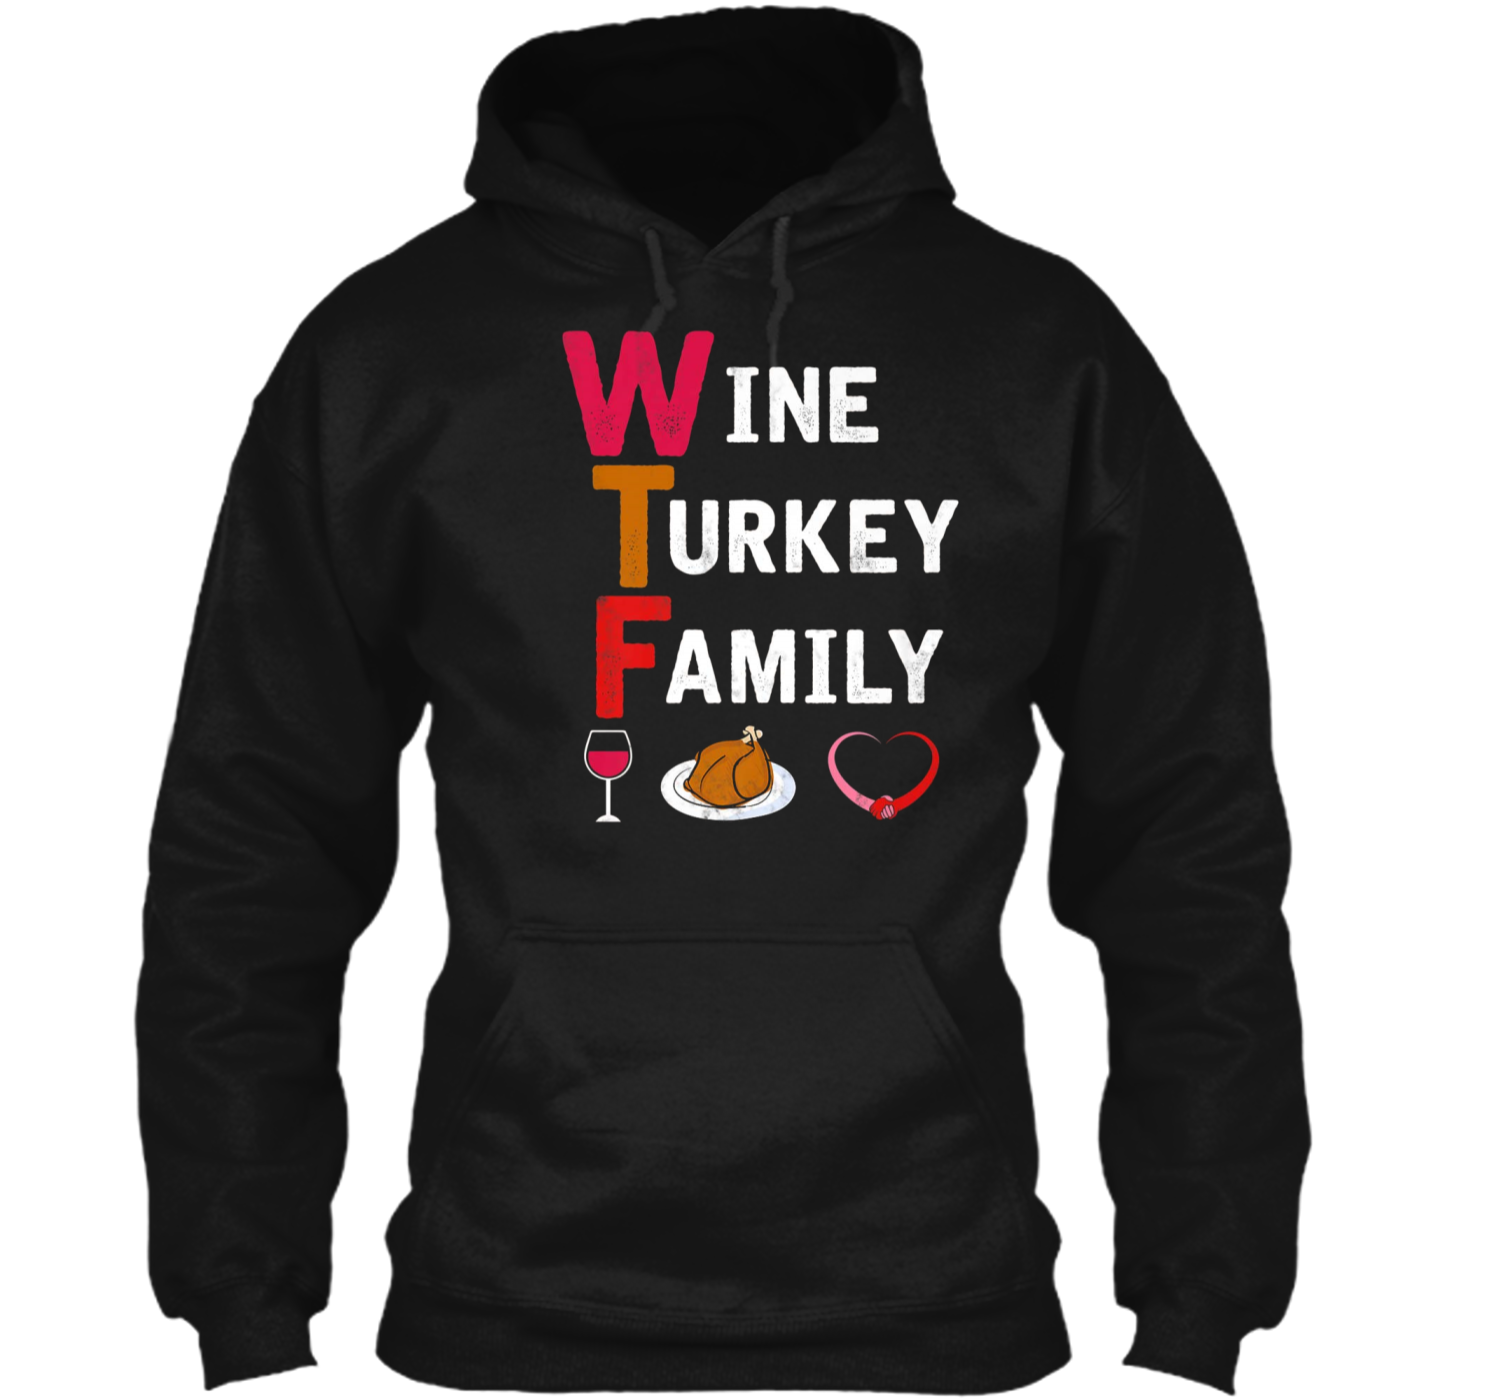 f3cea7f1 WTF Wine Turkey Family Funny Thanksgiving Day Tee Pullover Hoodie 8 ...